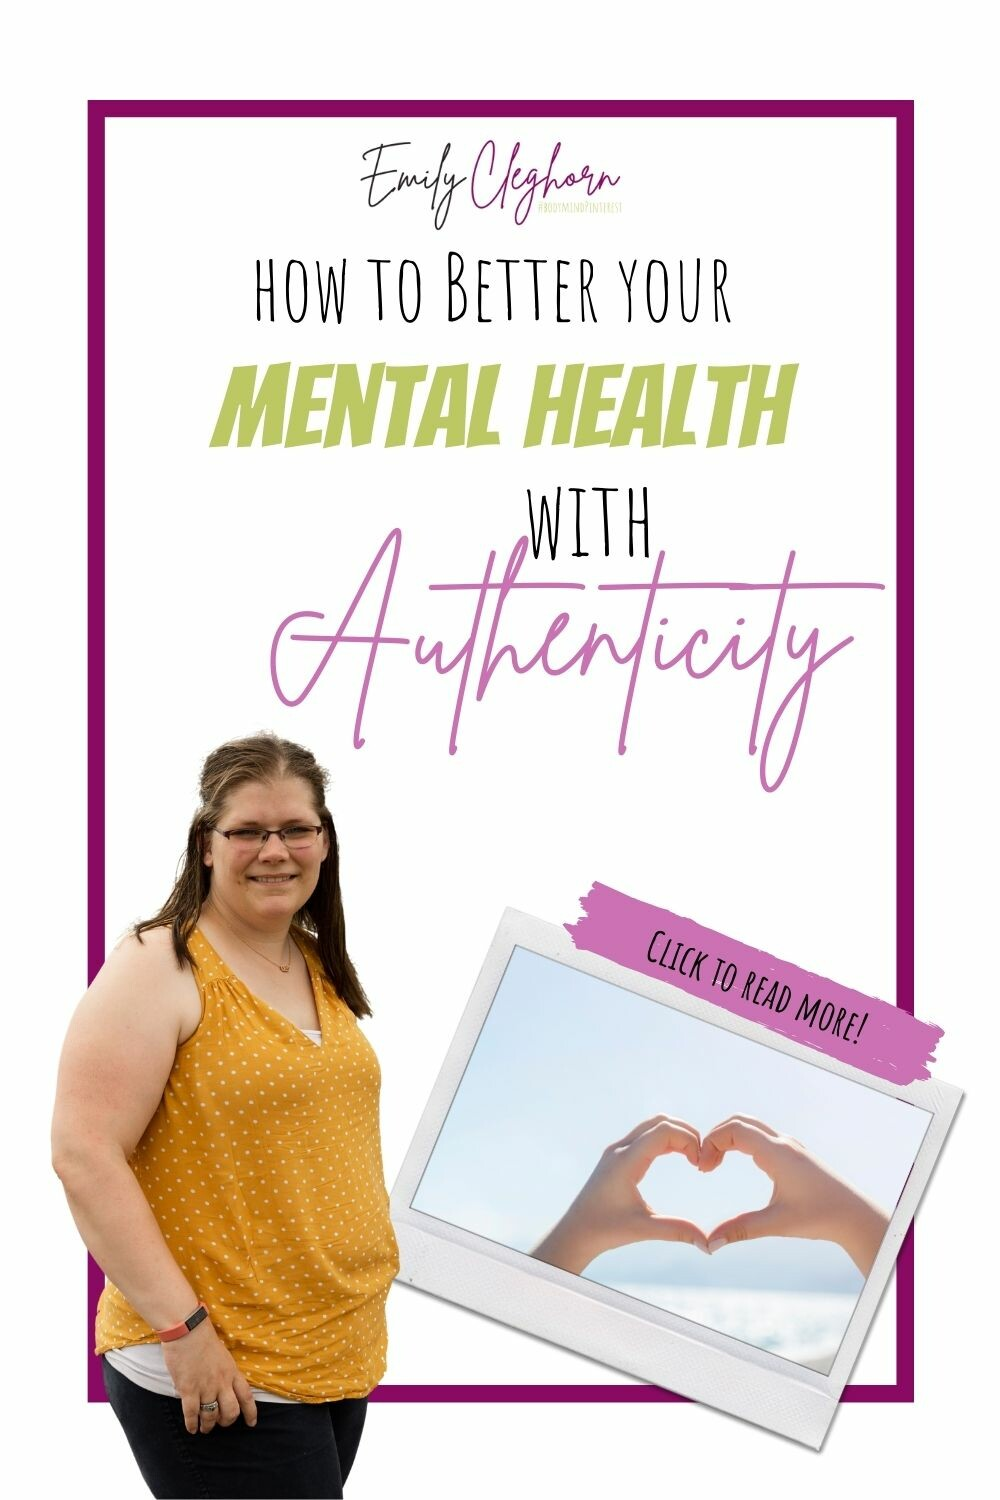 How to Better your Mental Health with Authenticity